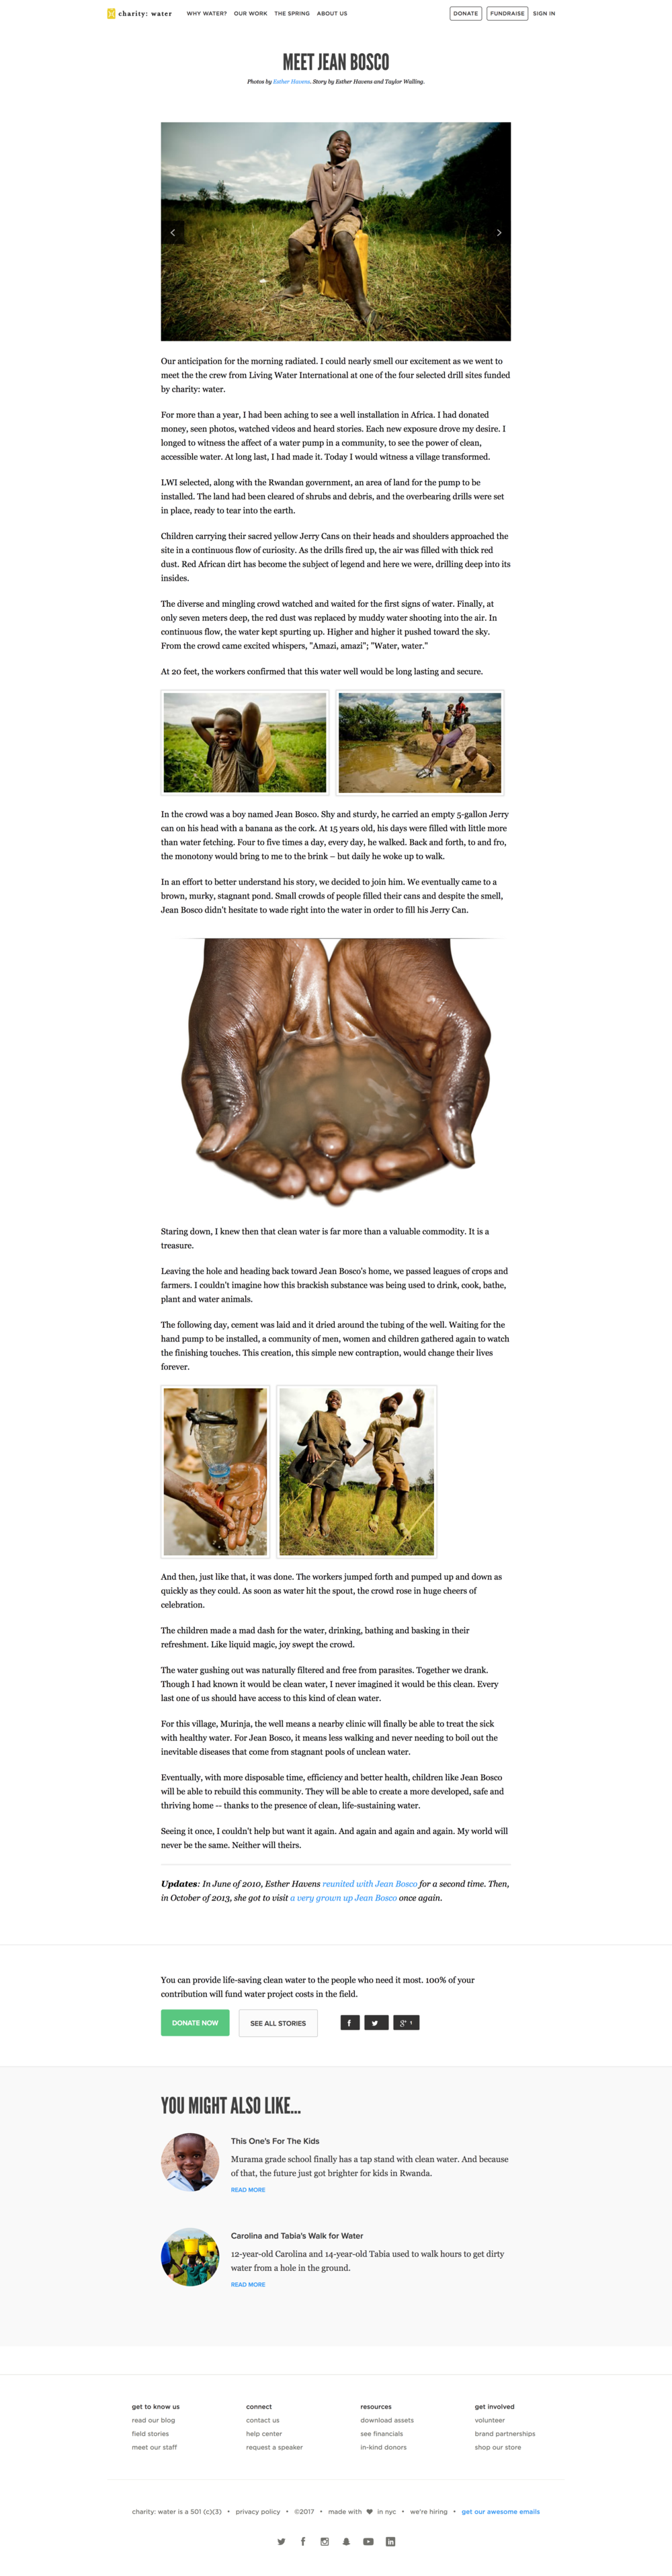 screencapture-charitywater-org-projects-stories-meet-jean-bosco-1492021905715.png